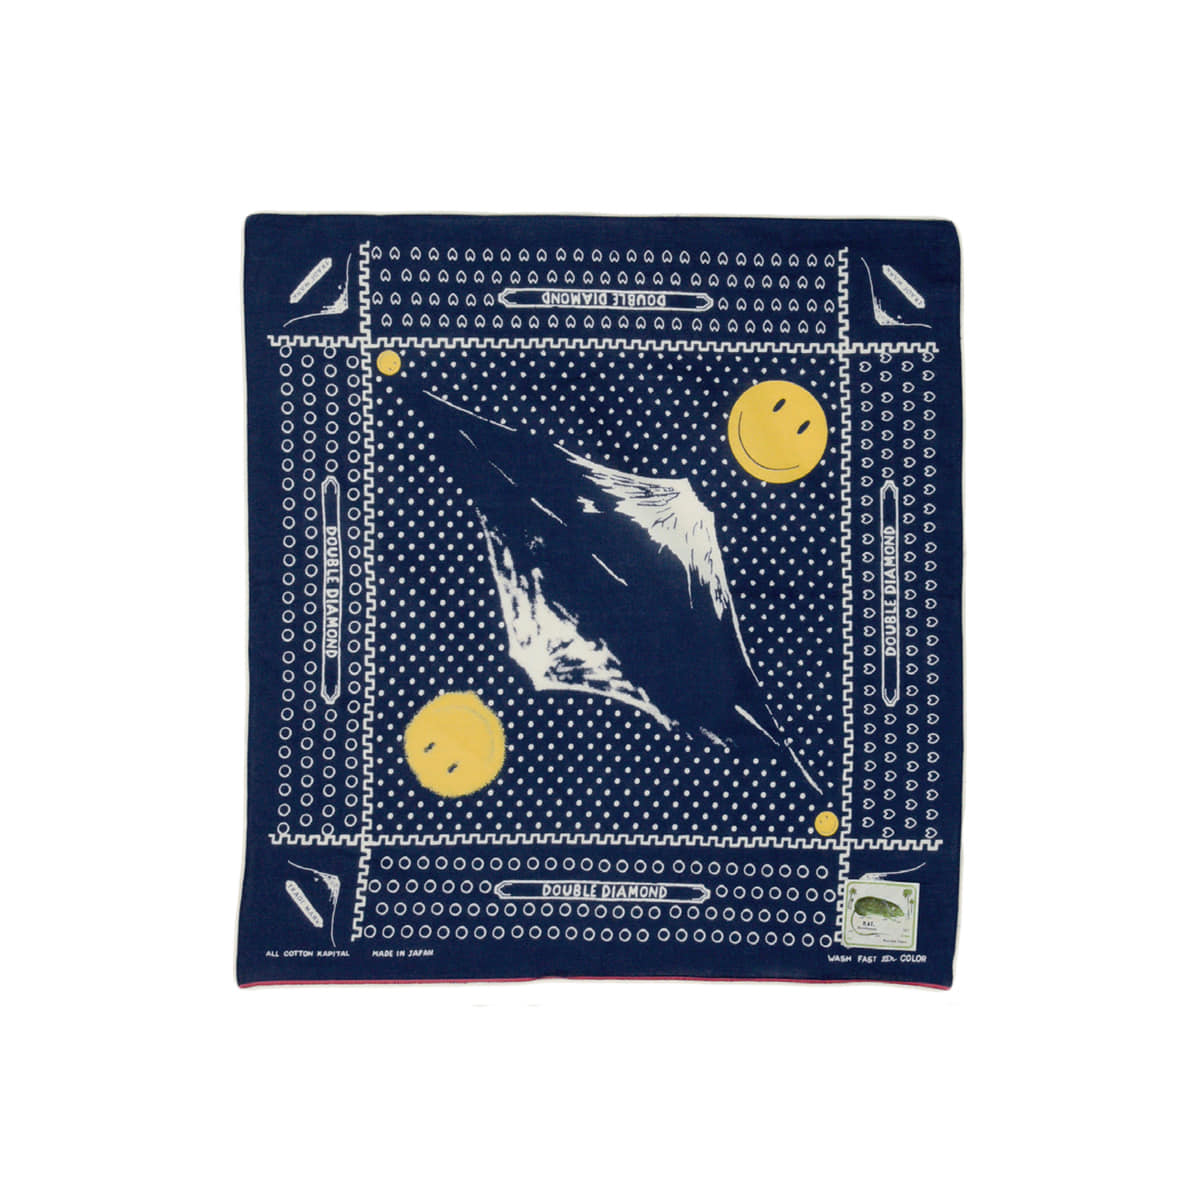 [KAPITAL] FAST COLOR SELVEDGE BANDANA (MIRRORED FUJI SMILE) 'NAVY'